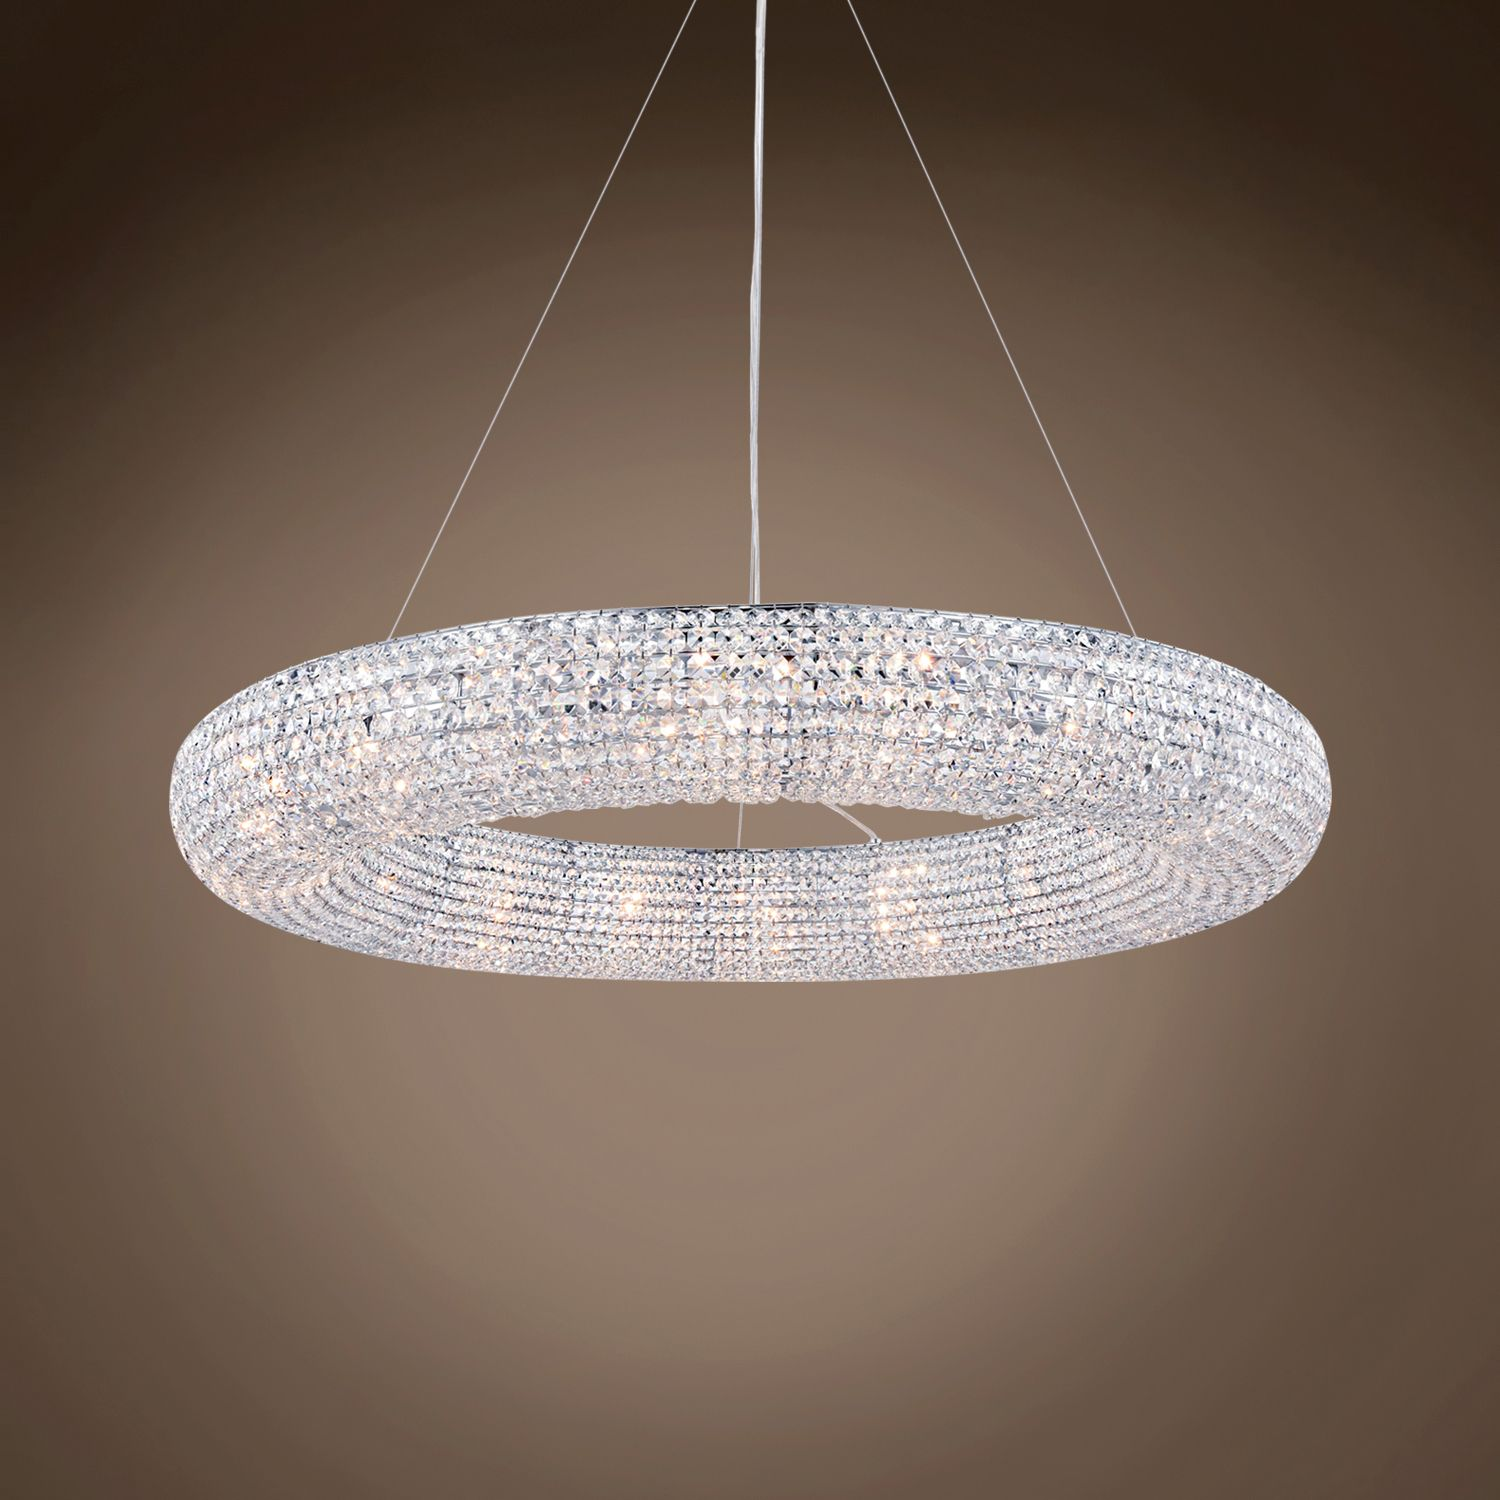 Pin On Lighting For Store